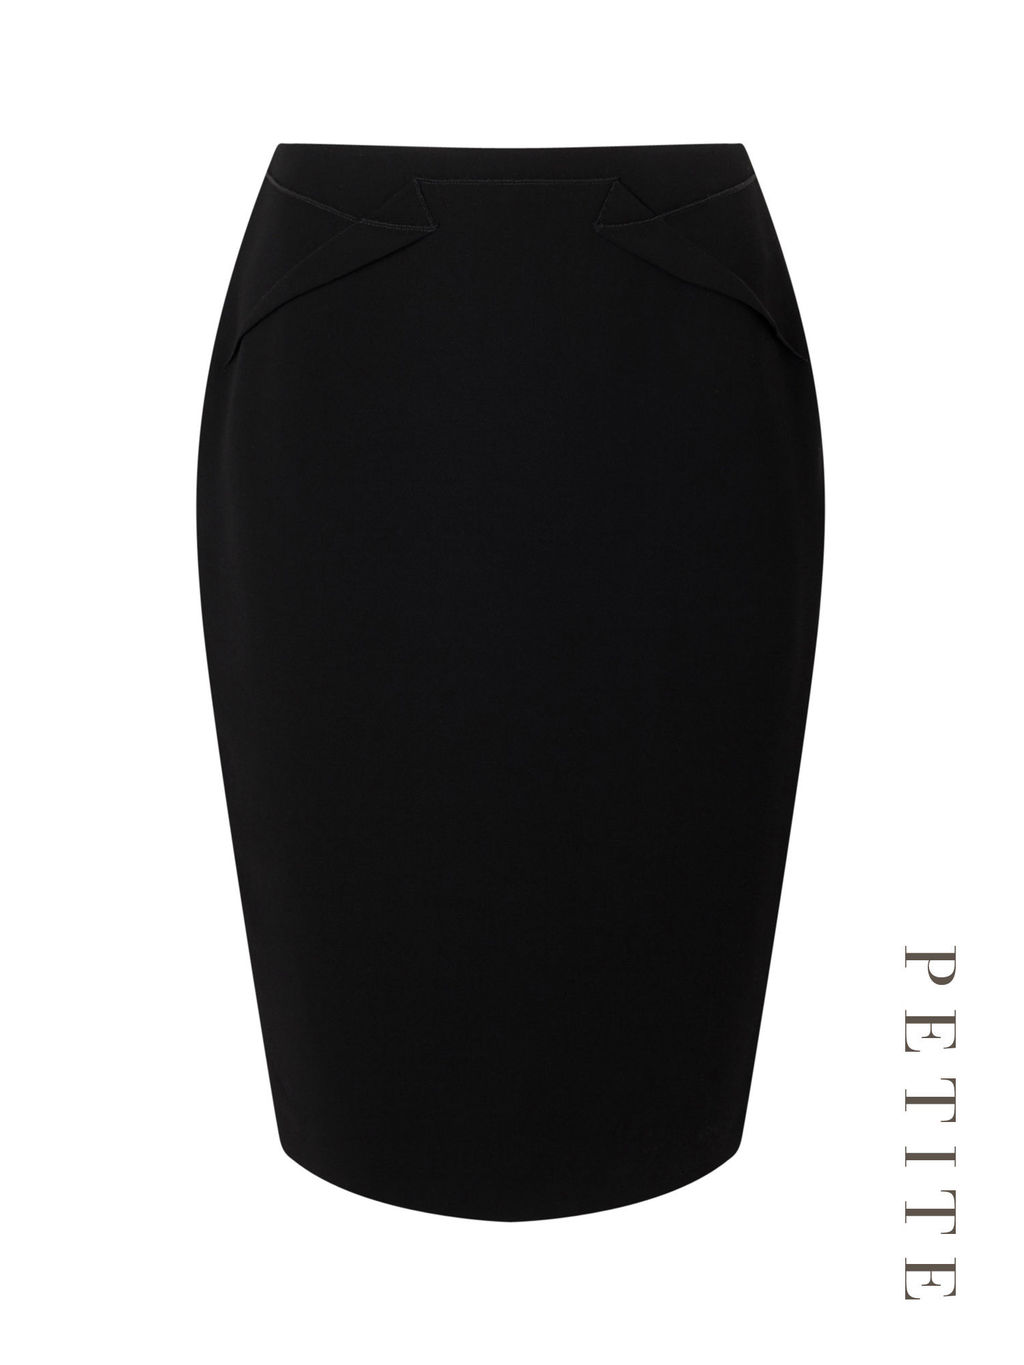 Petite Pencil Skirt - pattern: plain; style: pencil; fit: tailored/fitted; waist: mid/regular rise; predominant colour: black; occasions: work; length: just above the knee; fibres: polyester/polyamide - 100%; pattern type: fabric; texture group: other - light to midweight; season: s/s 2016; wardrobe: basic